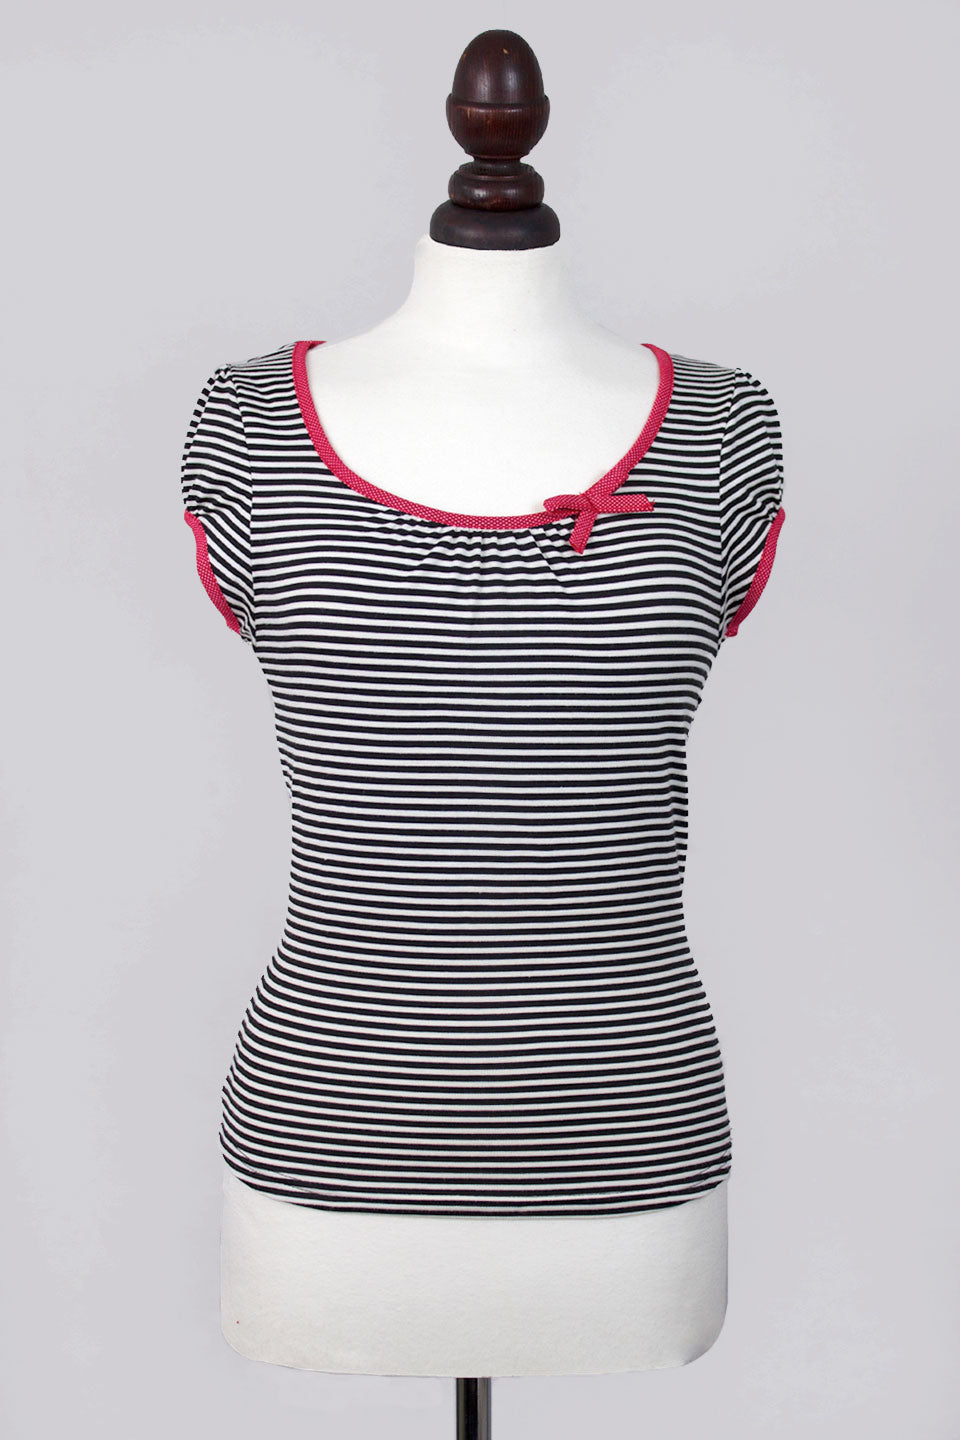 Sailor Black and White Striped Top - Weekend Doll